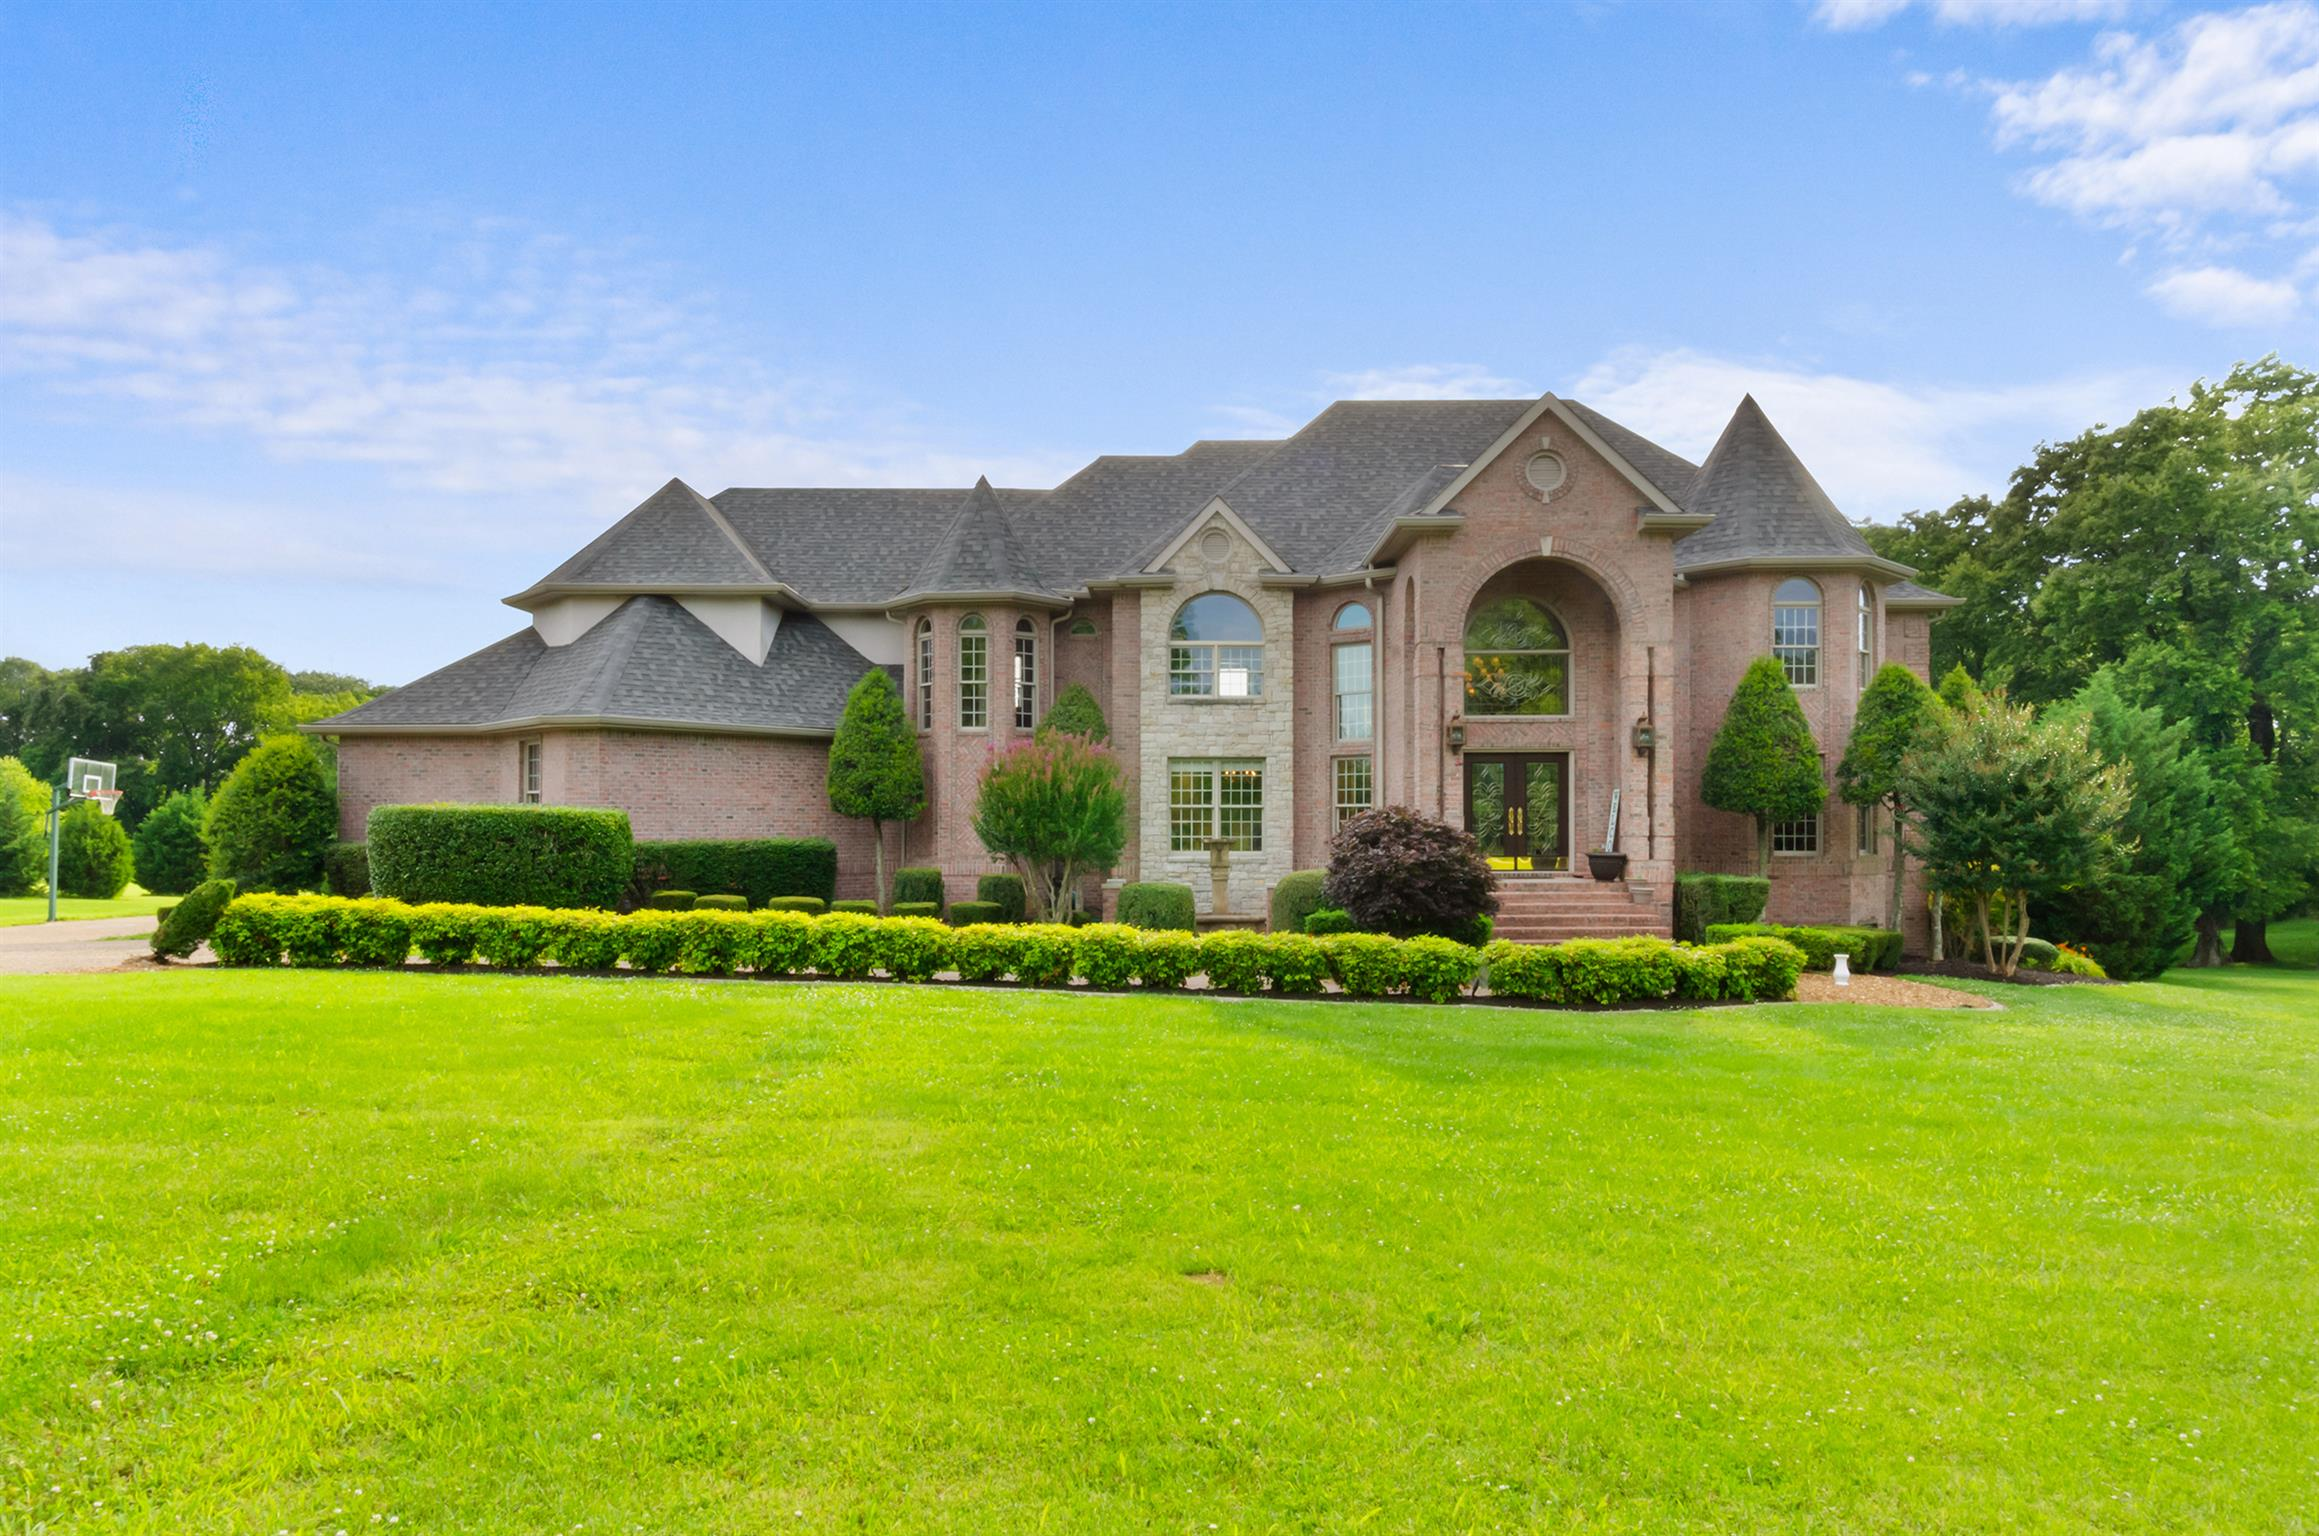 $975,000 - 5Br/6Ba -  for Sale in Palmer West, Lebanon